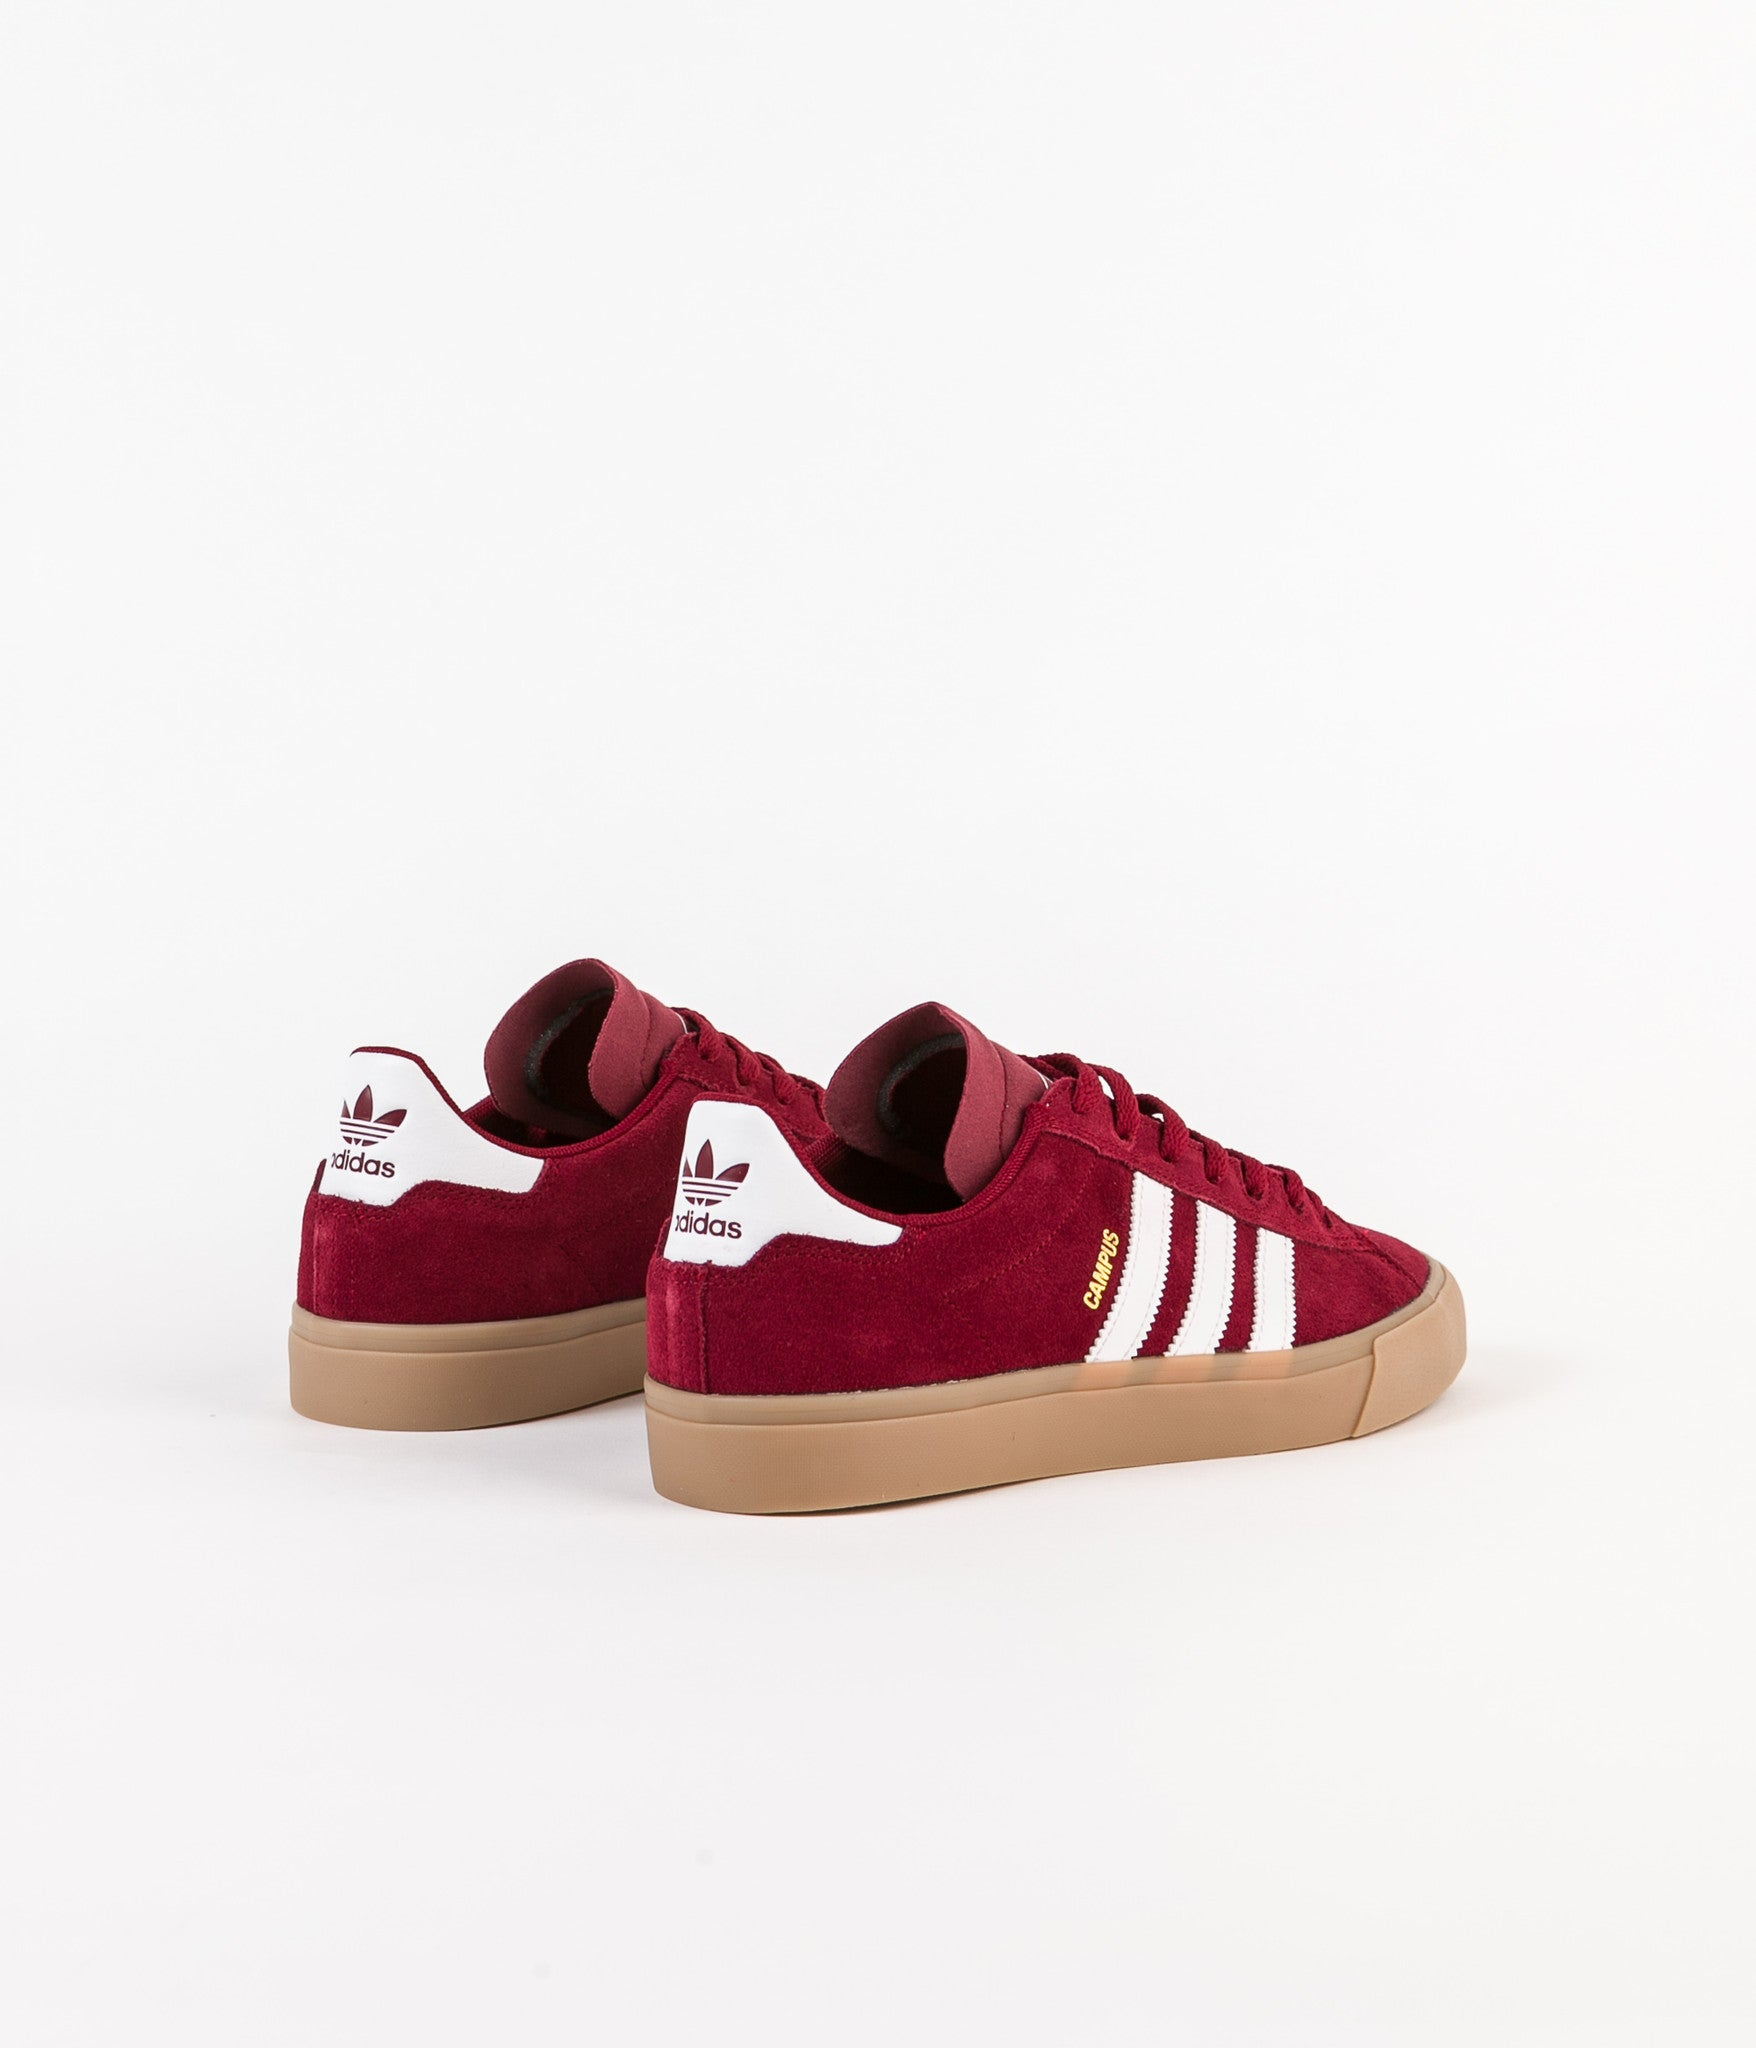 huge selection of b45ab a9e0d ... Adidas Campus Vulc II Adv Shoes - Collegiate Burgundy  White  Gum4 ...